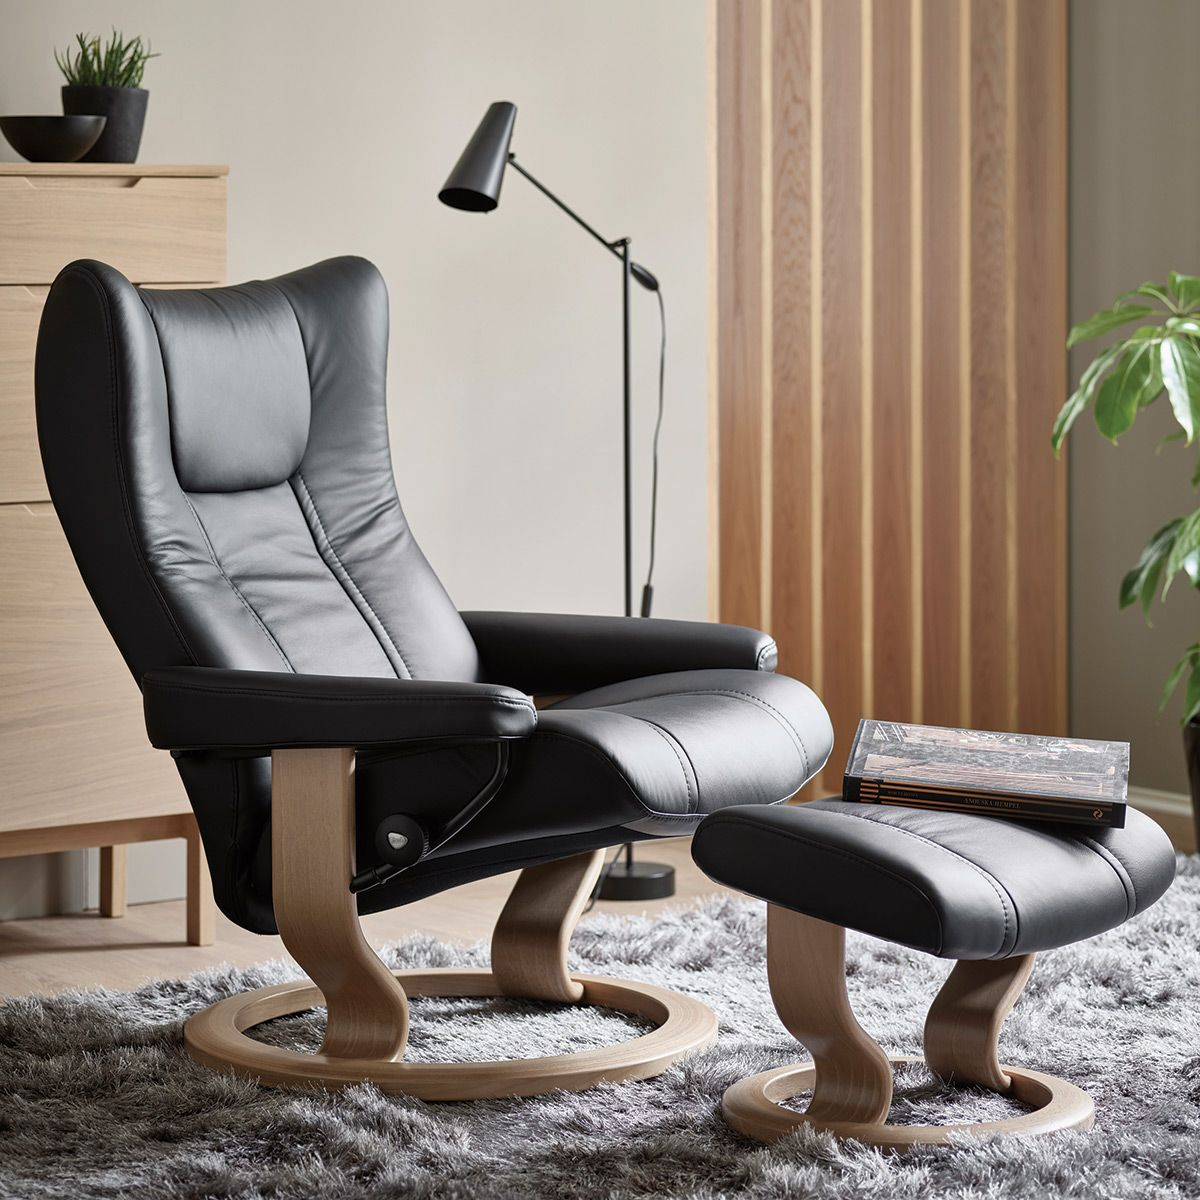 Stressless Wing Scandinavian Recliner Chairs Stressless Recliner Rooms To Go Recliners